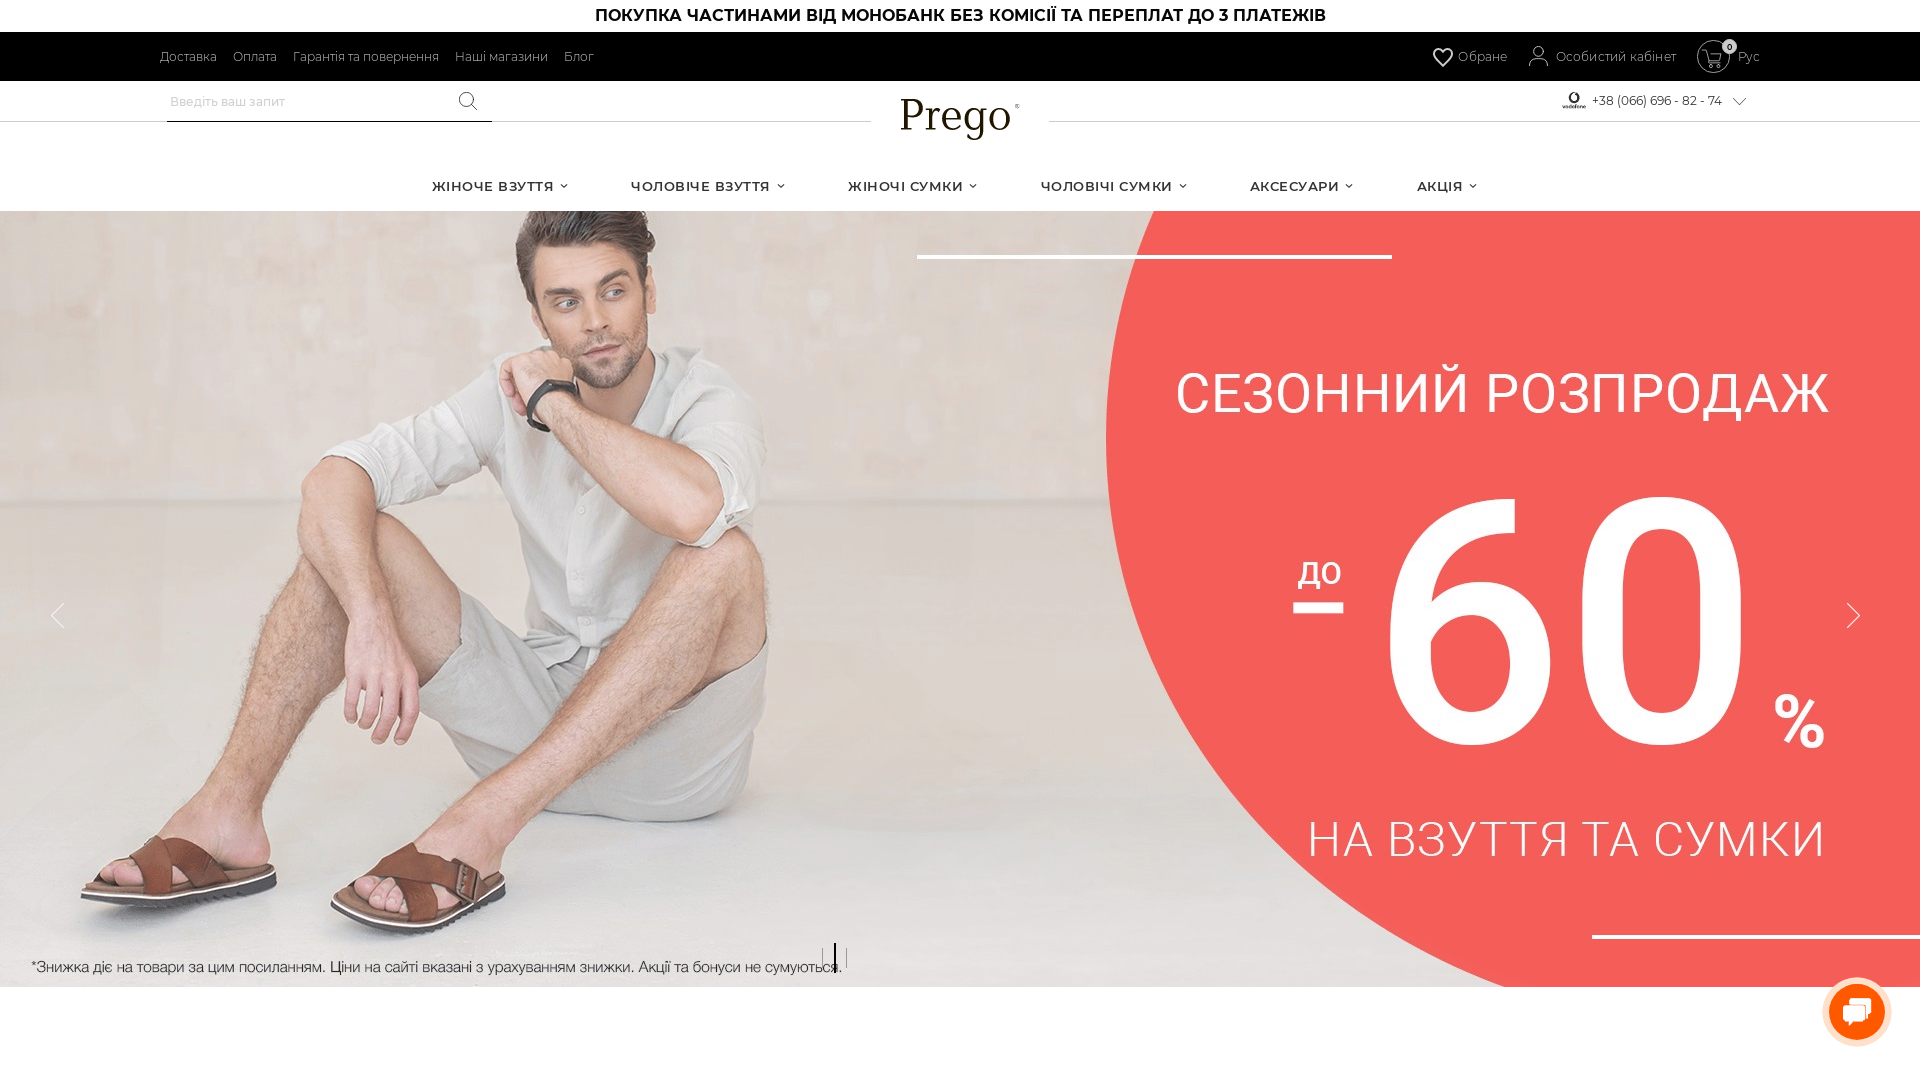 PREGO UA - ADM website